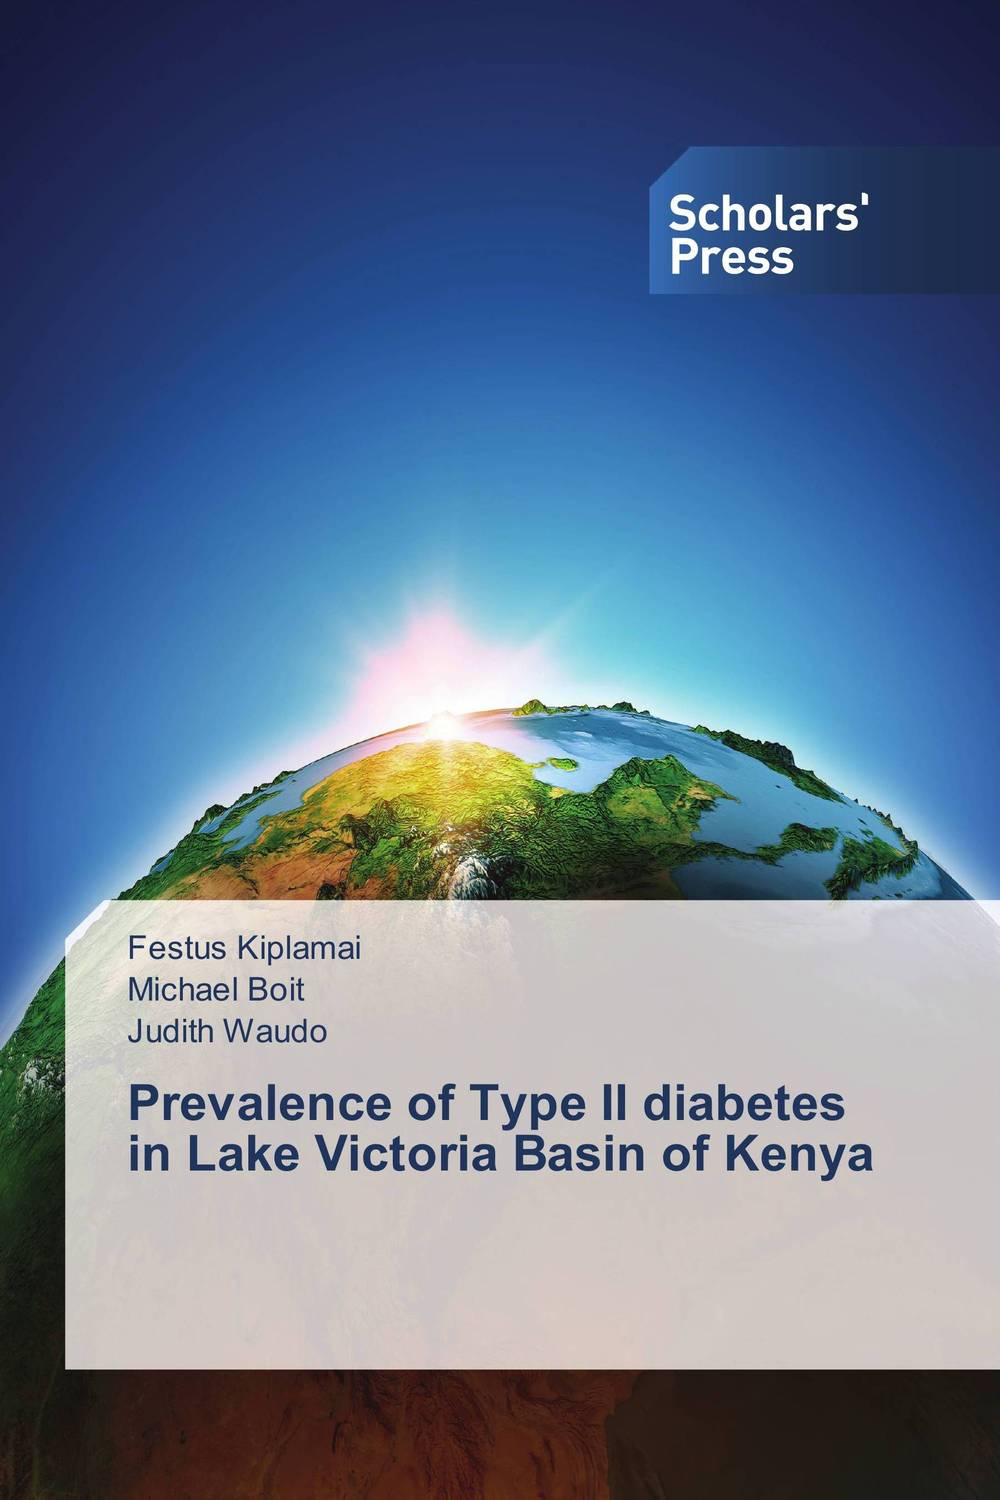 Prevalence of Type II diabetes in Lake Victoria Basin of Kenya week at the lake